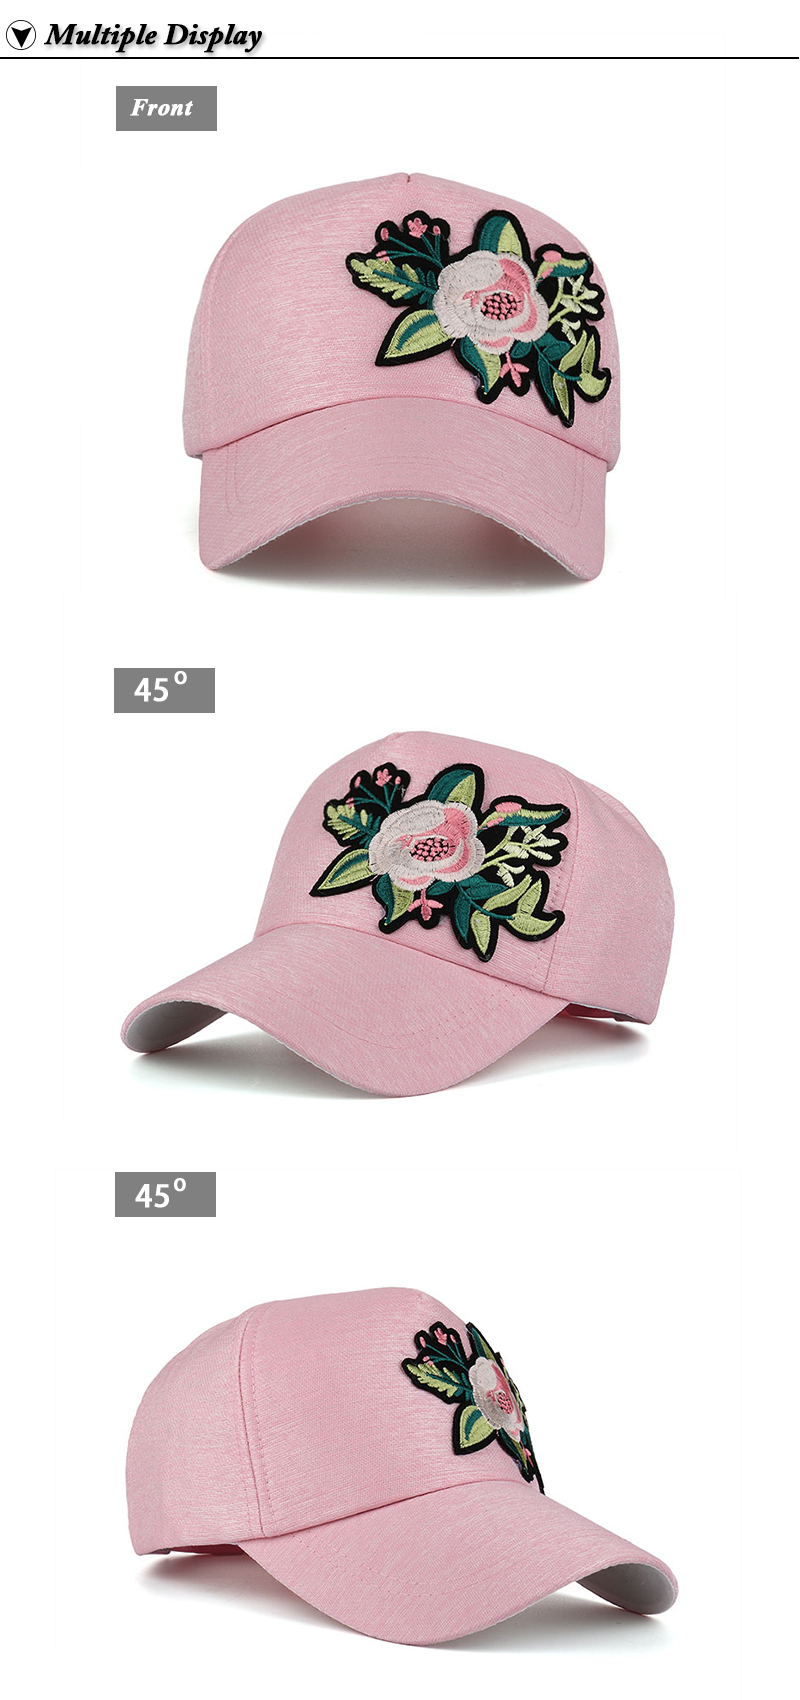 Embroidered Flower Snapback Cap - Front and Front Angle Views